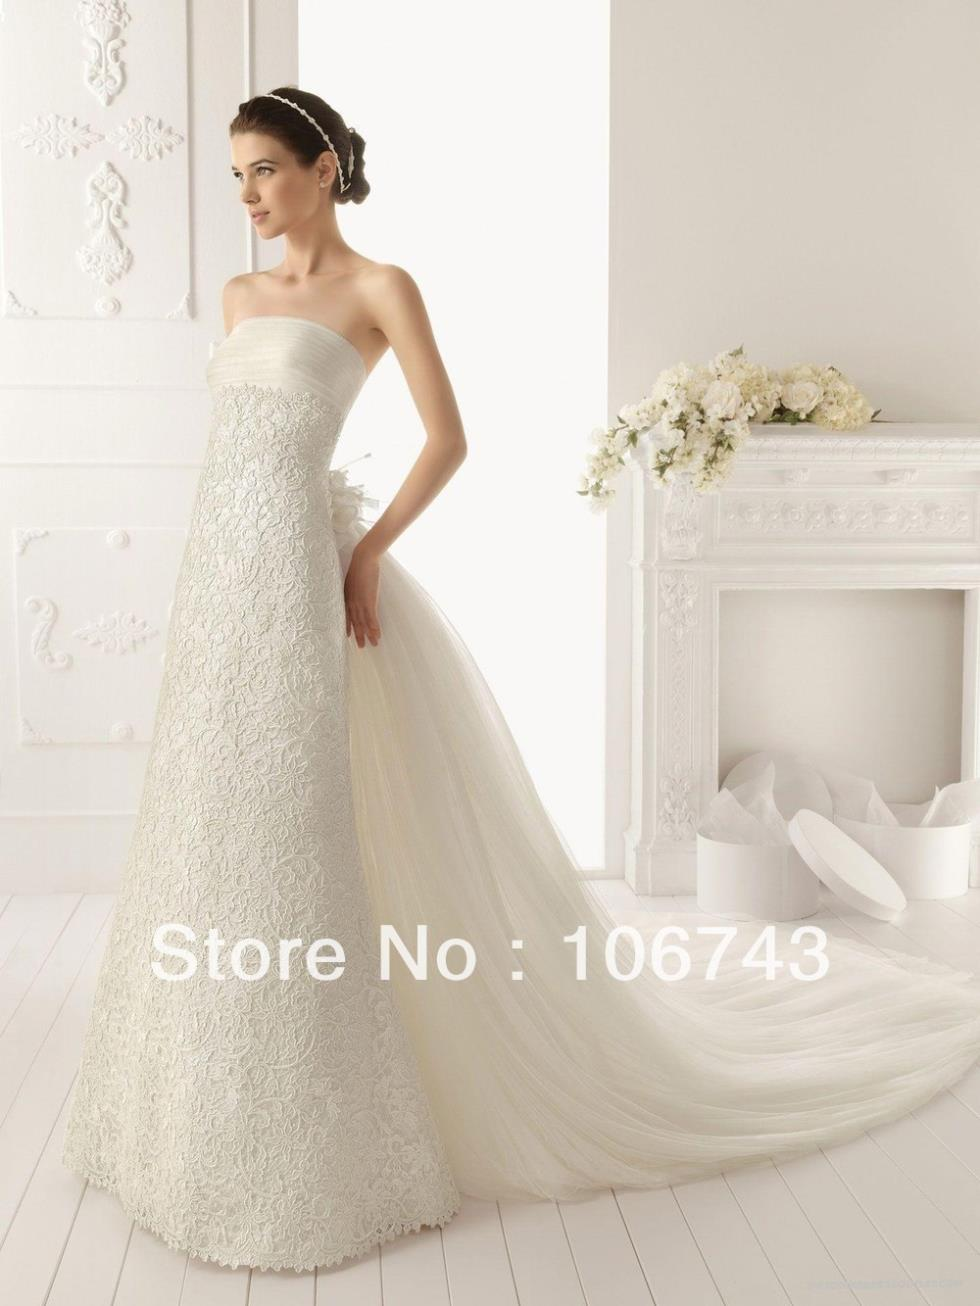 Wedding Dresses China Free Shipping 2016 Tulle Strapless Style With Lavish Designer Gown White/lvory Lace Wedding Dresses